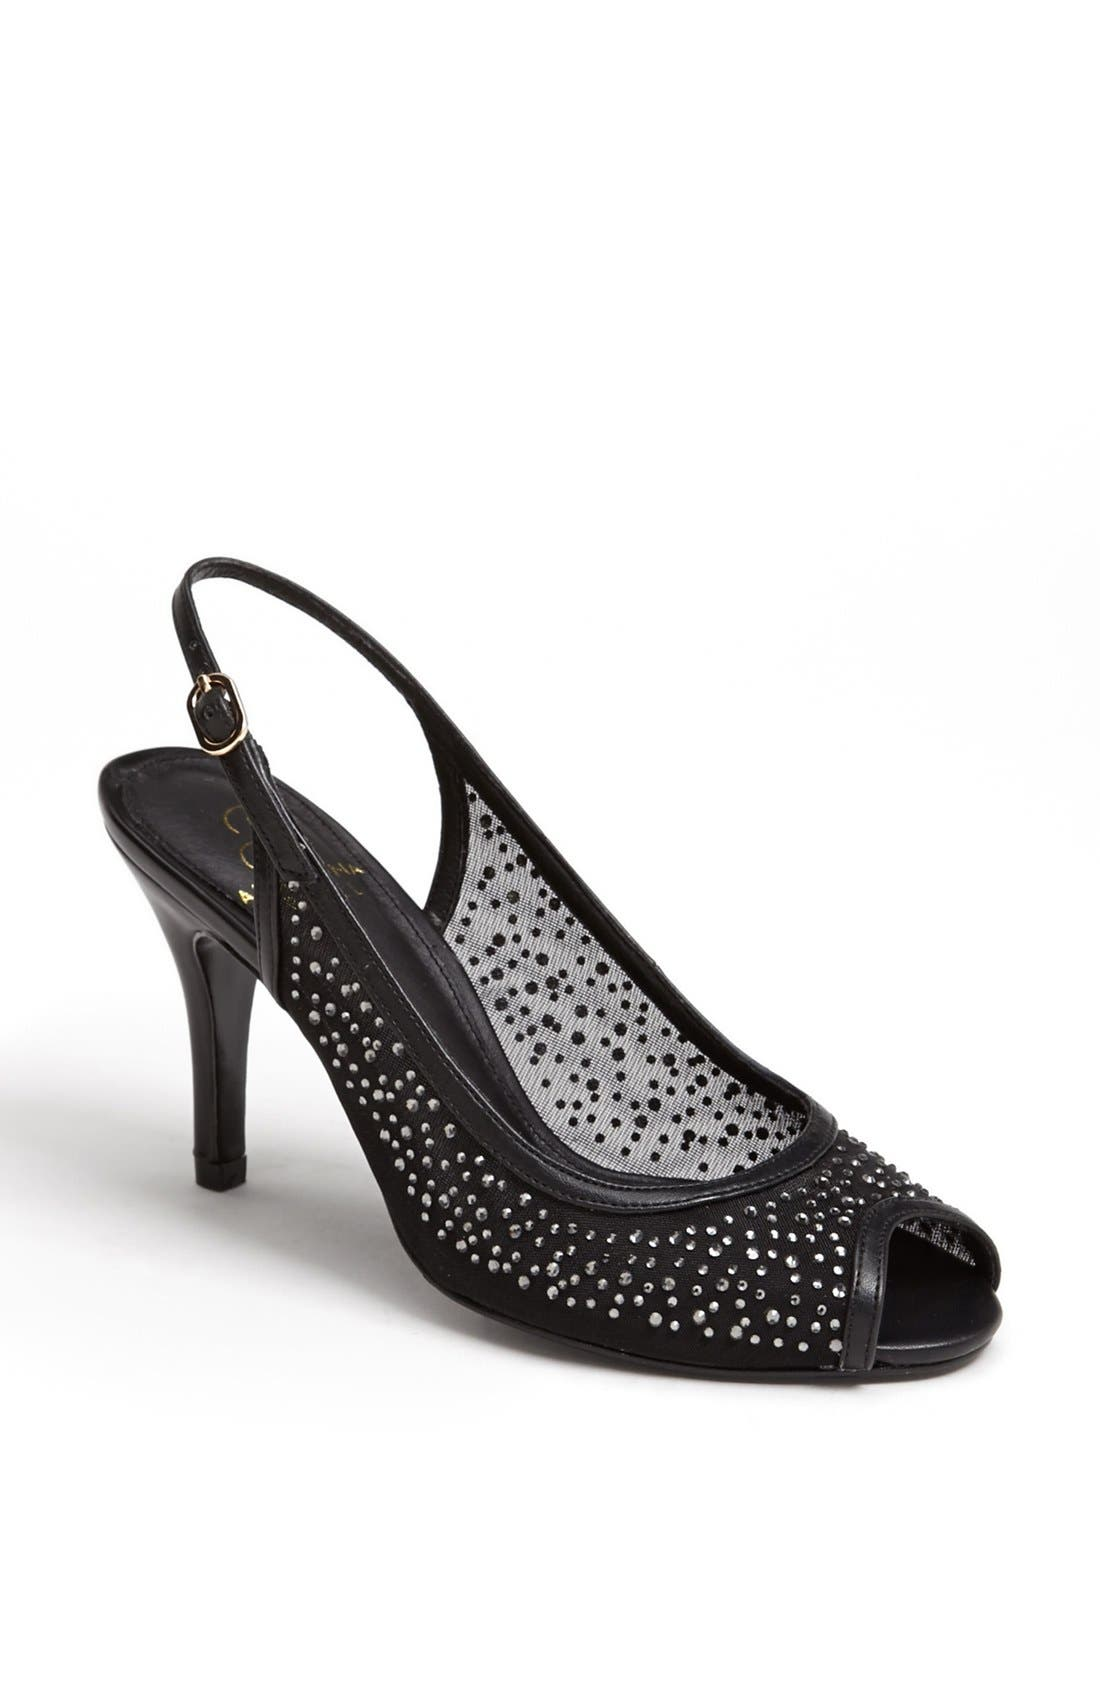 Main Image - Adrianna Papell 'Fame' Pump